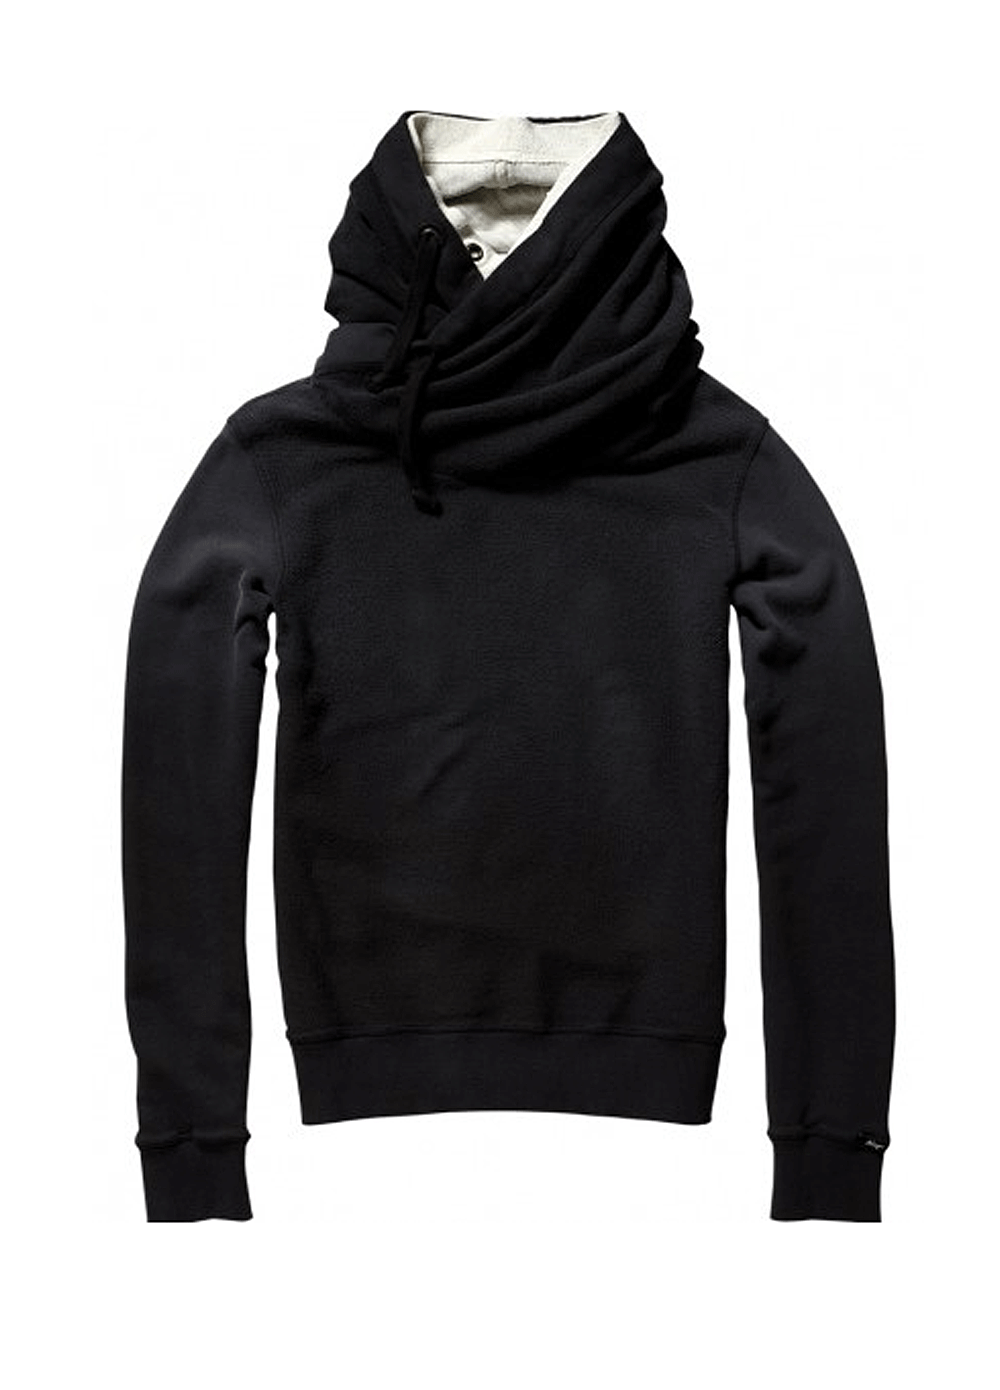 Maison Scotch Double Collar Hooded Sweater in Black